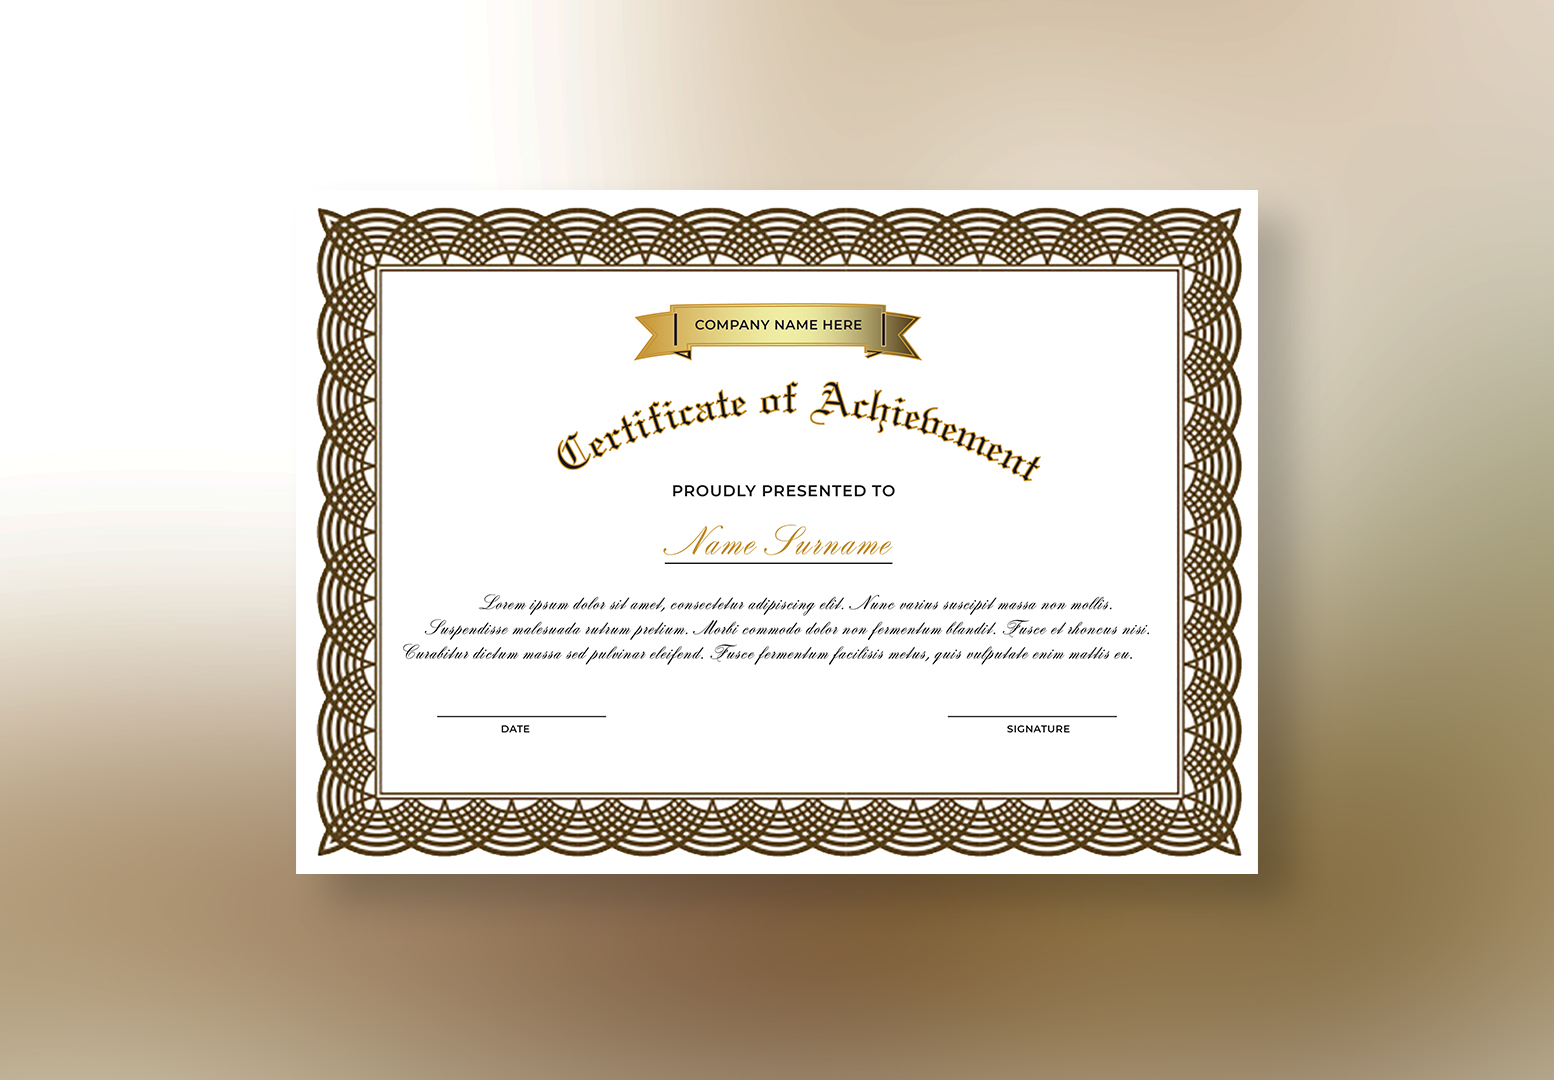 I can prepare diversity of Certificate designs within 24 hours